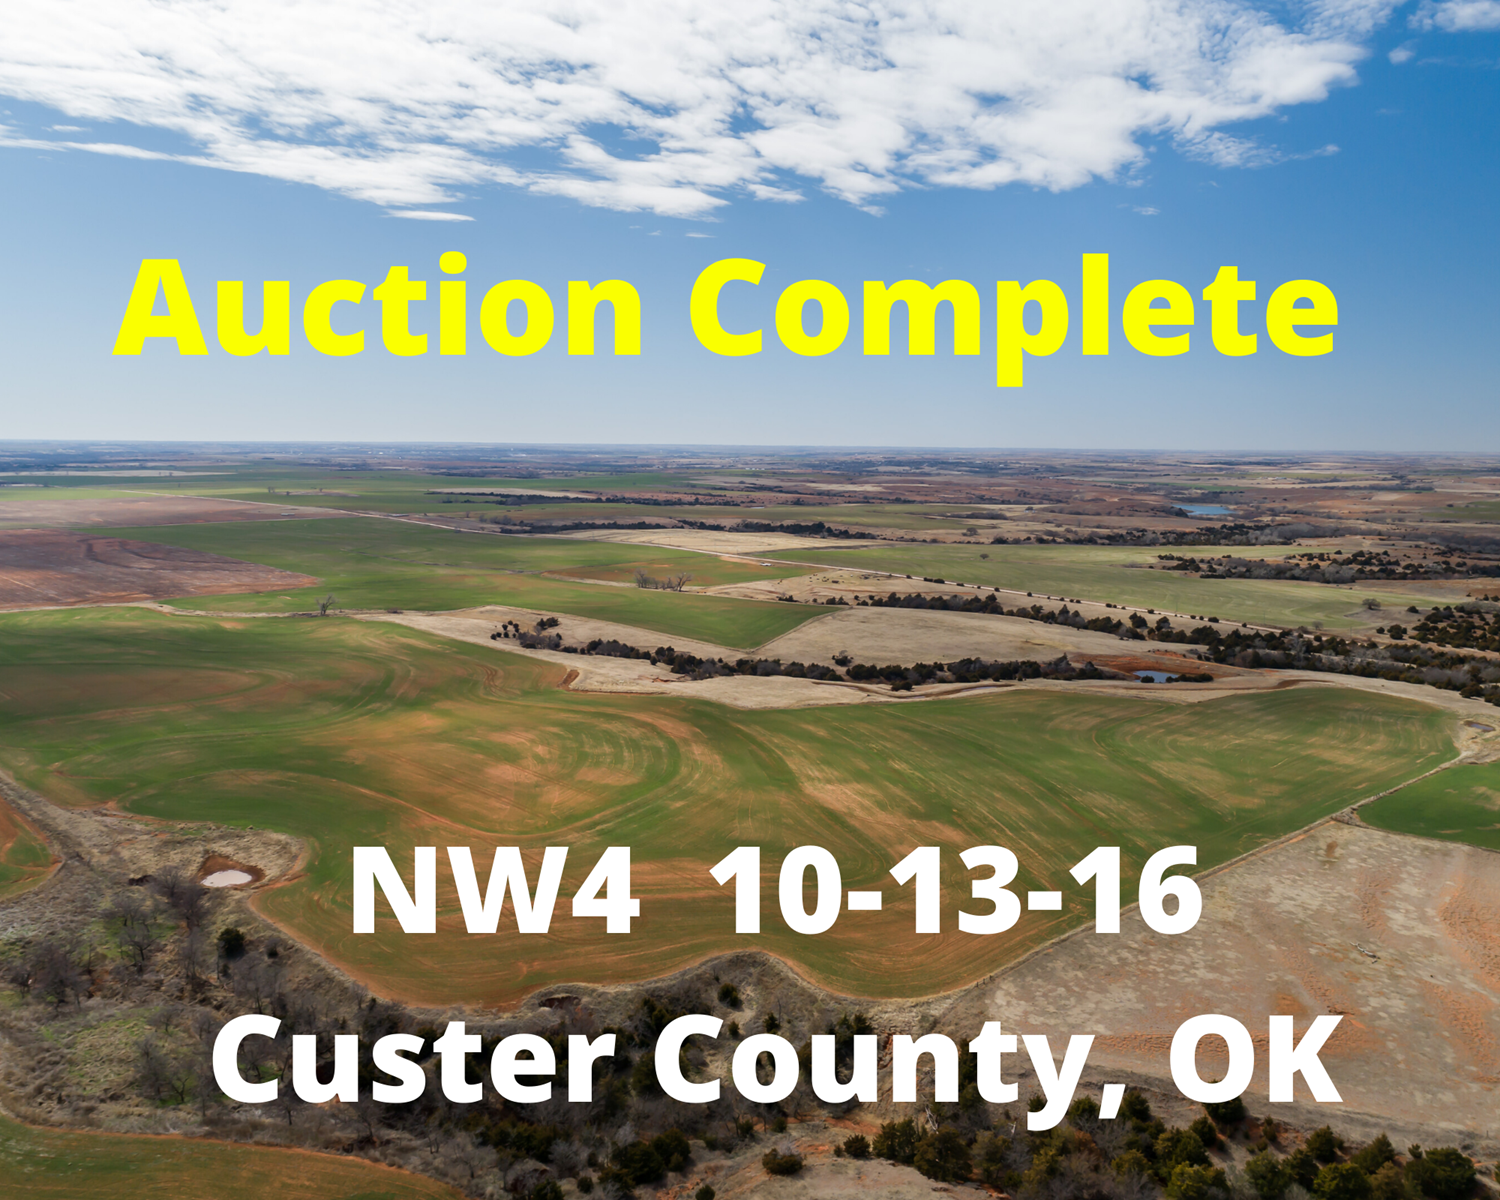 Farm, Ranch & Hunting Land for Sale, Custer County, OK